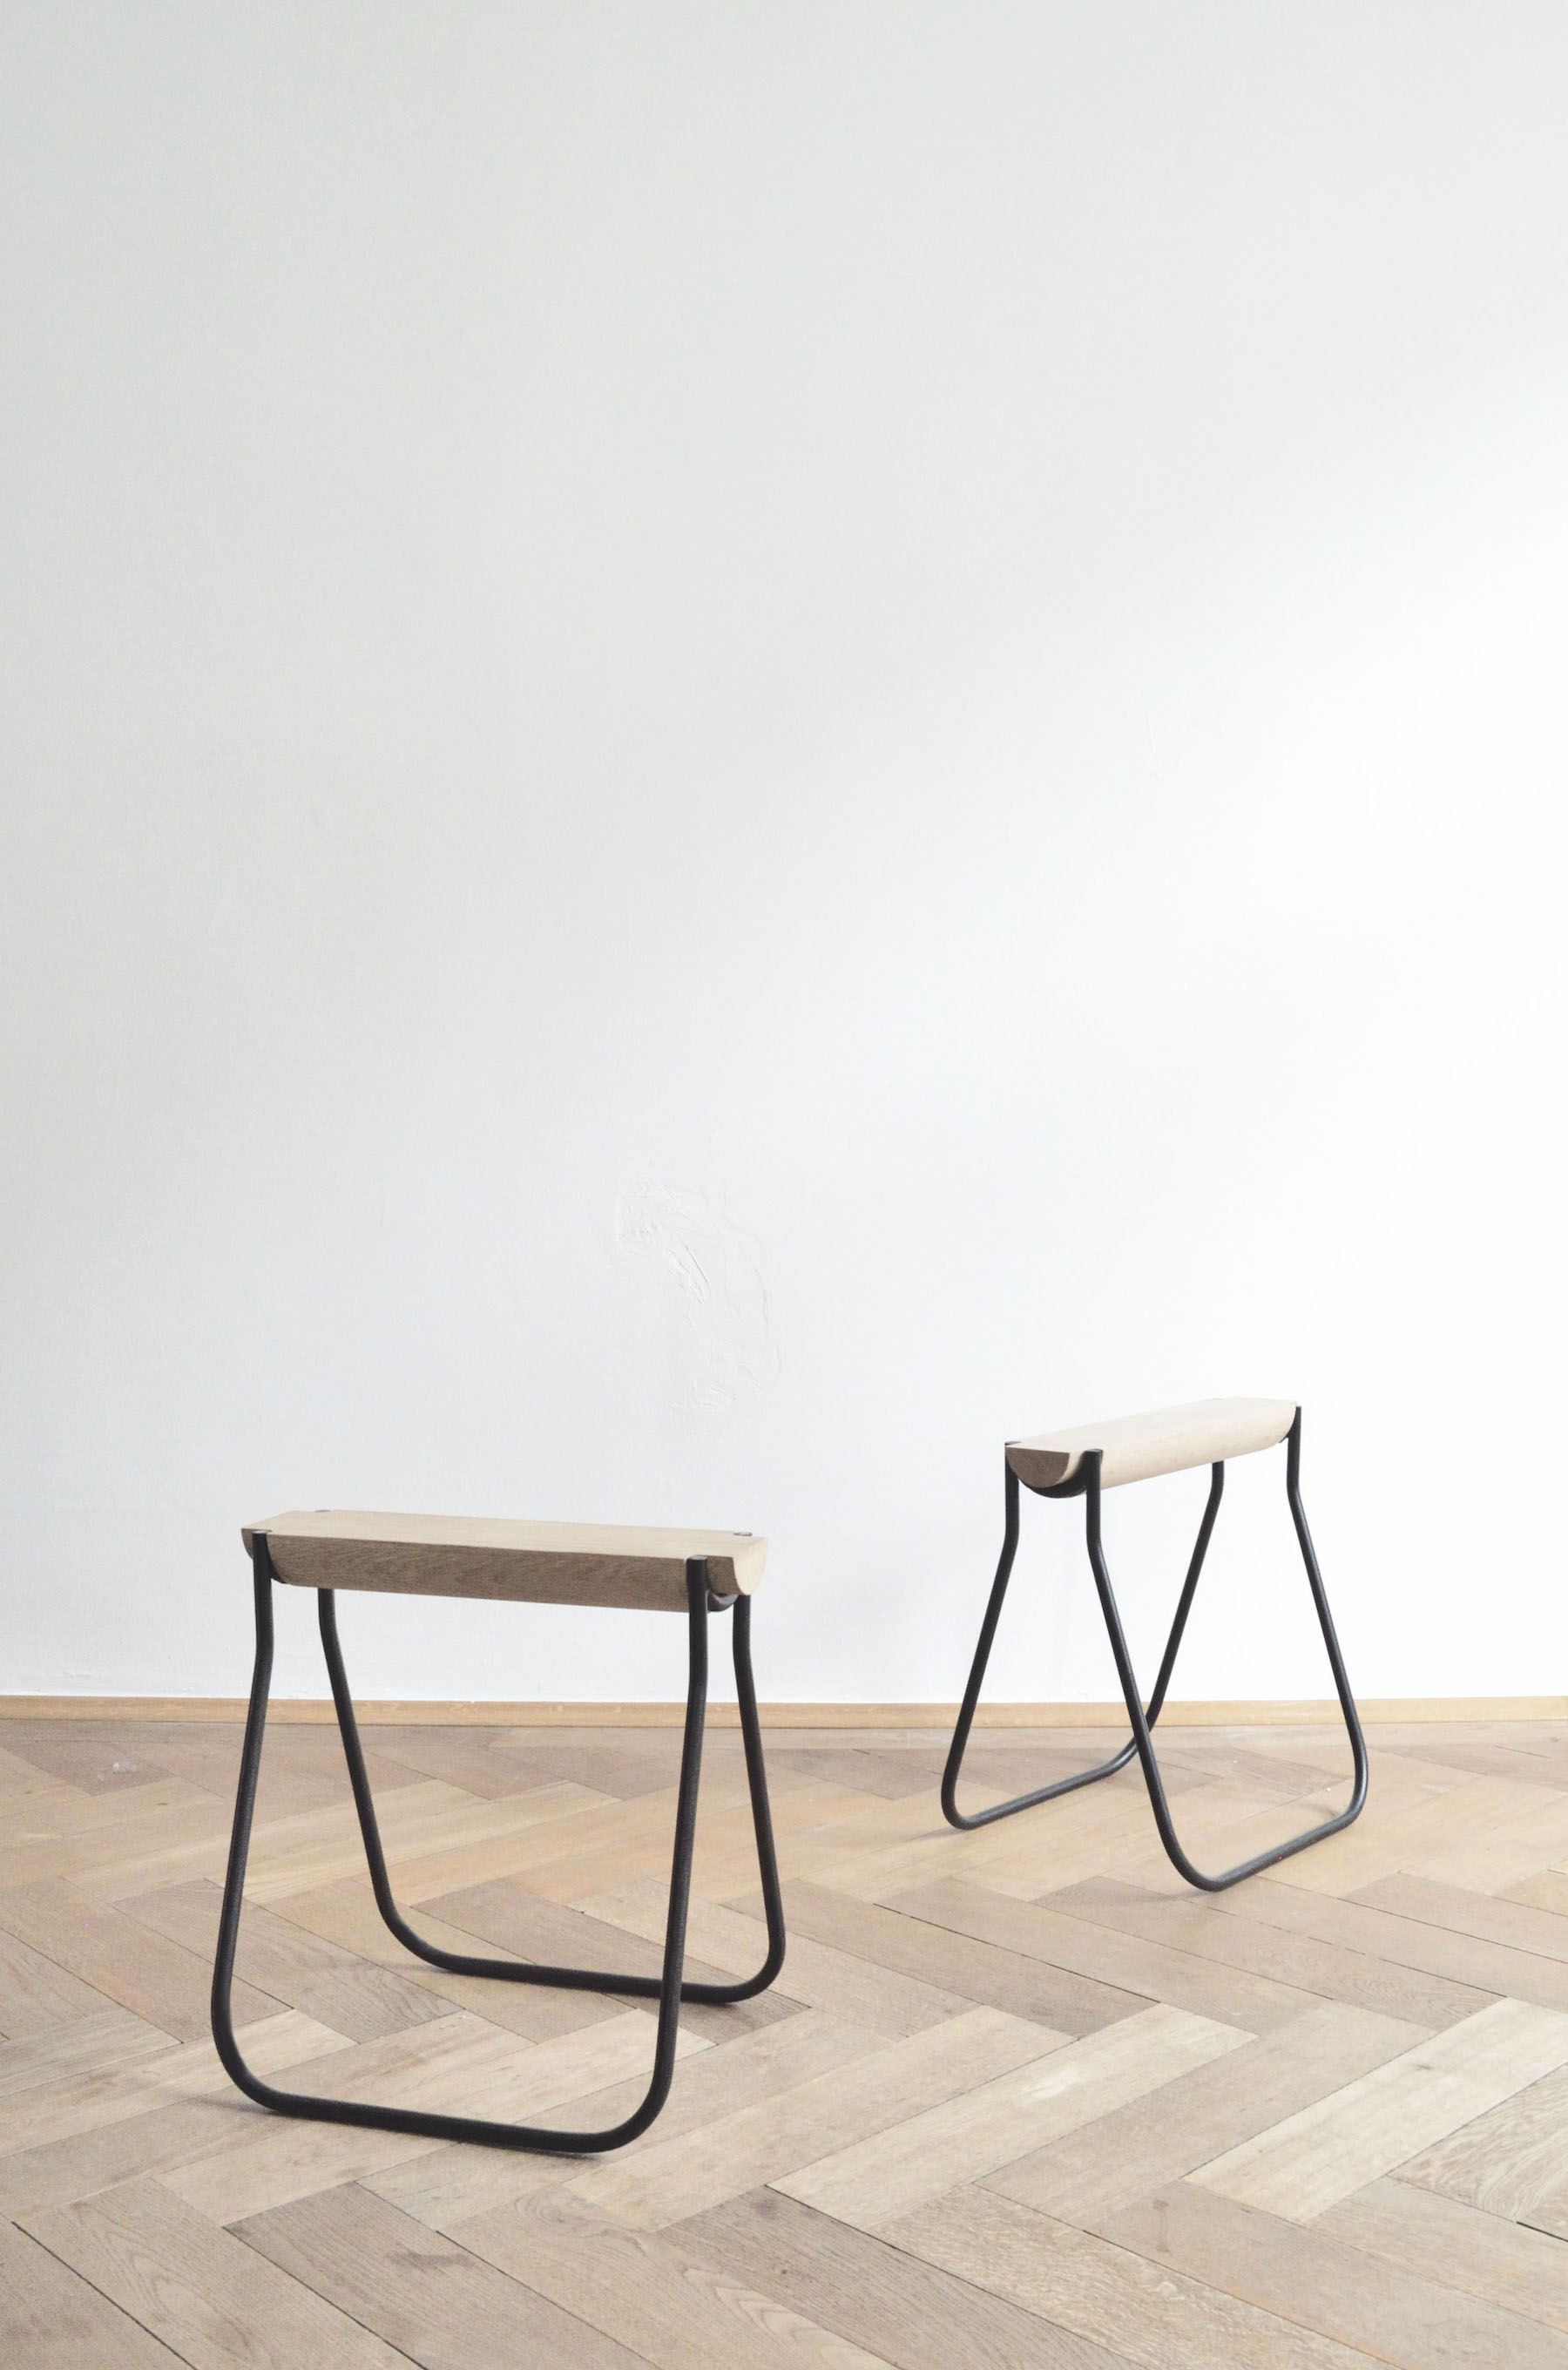 minimalist coffee stools. 6040 is a set of minimal stools created by Munich based designers Studio  Stephan Schmid furniture Minimal and Stools